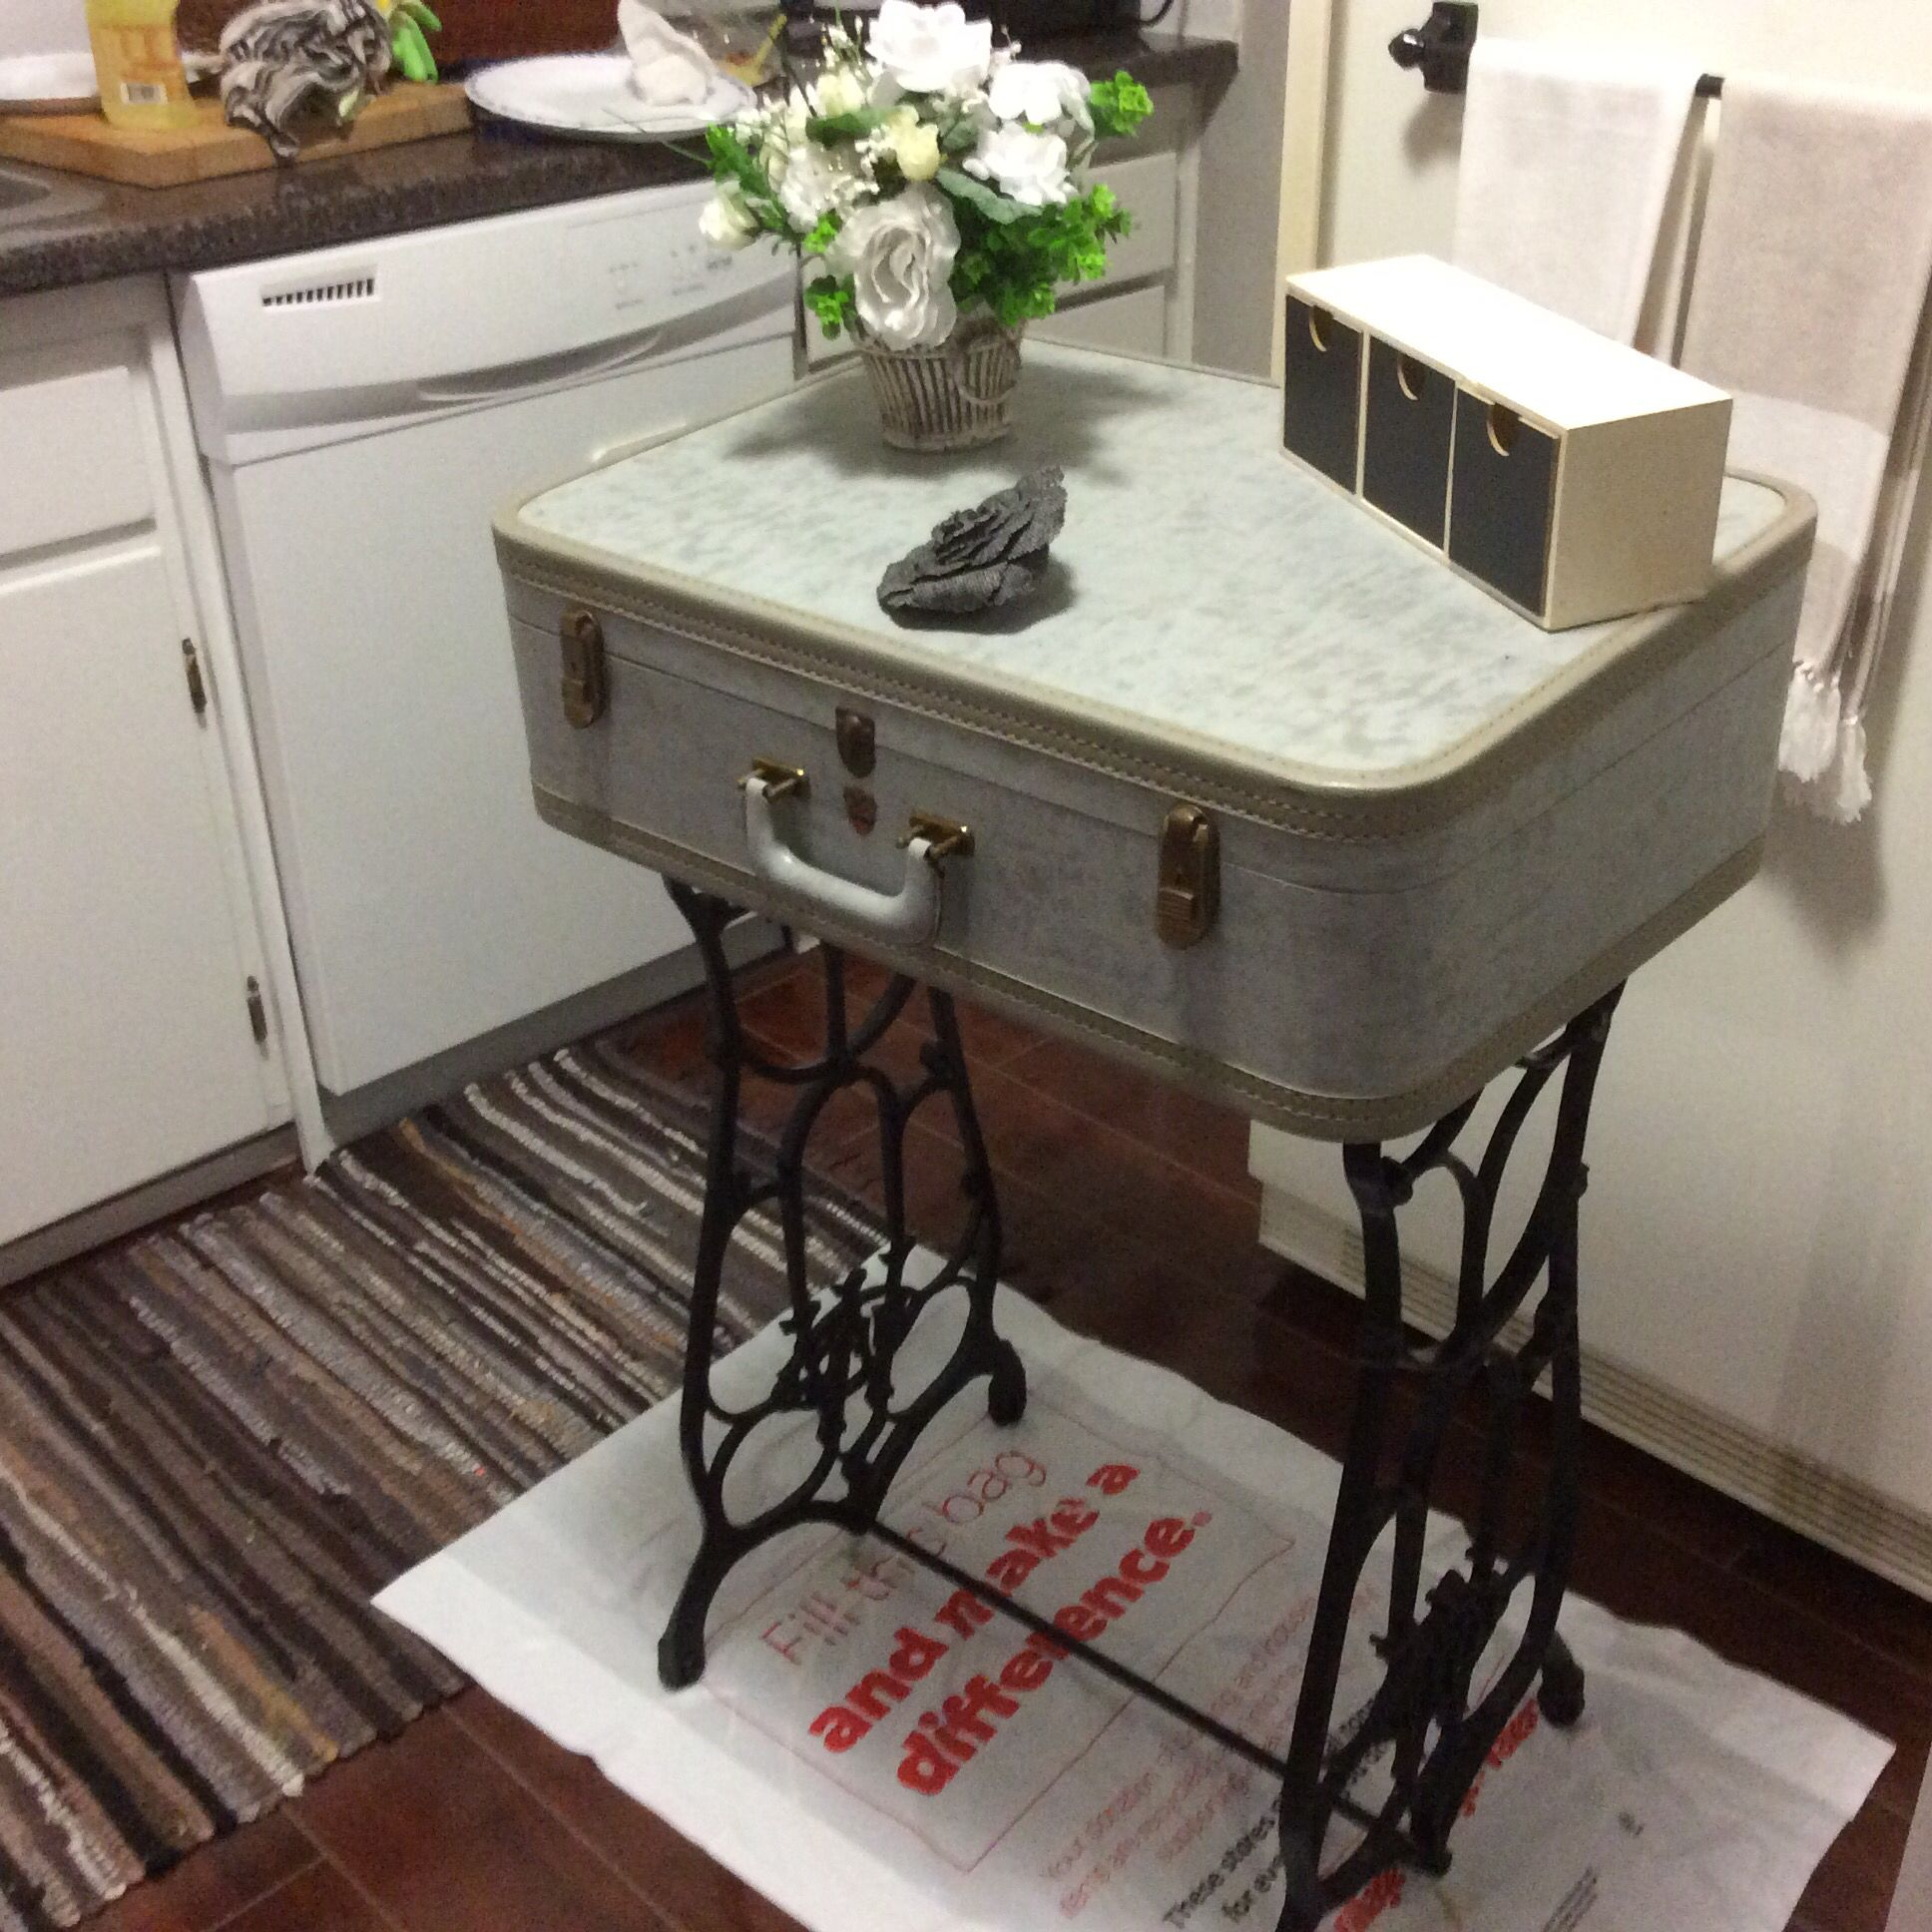 Quirky Tables Diy Repurposed Furniture Quirky And Functional Suitcase